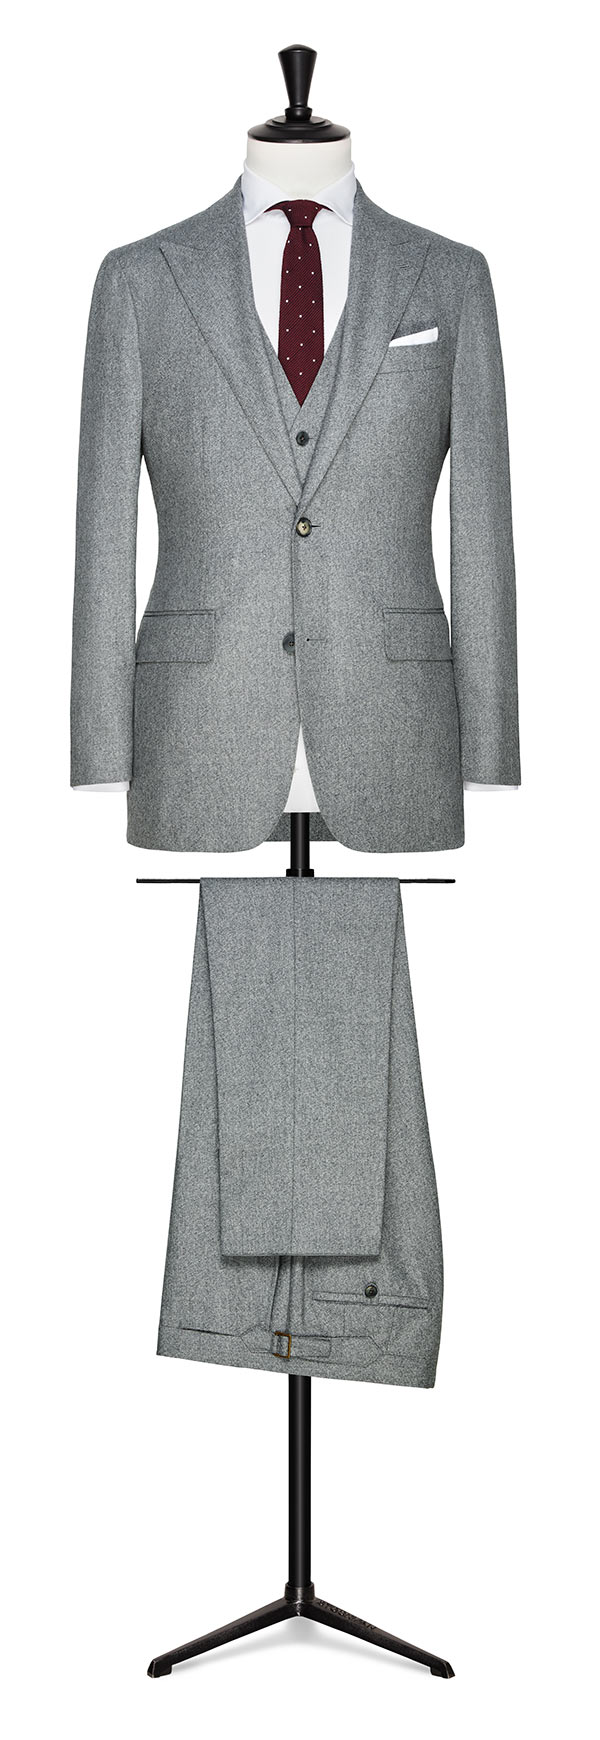 Maatpak Loro Piana - Dream Tweed 3